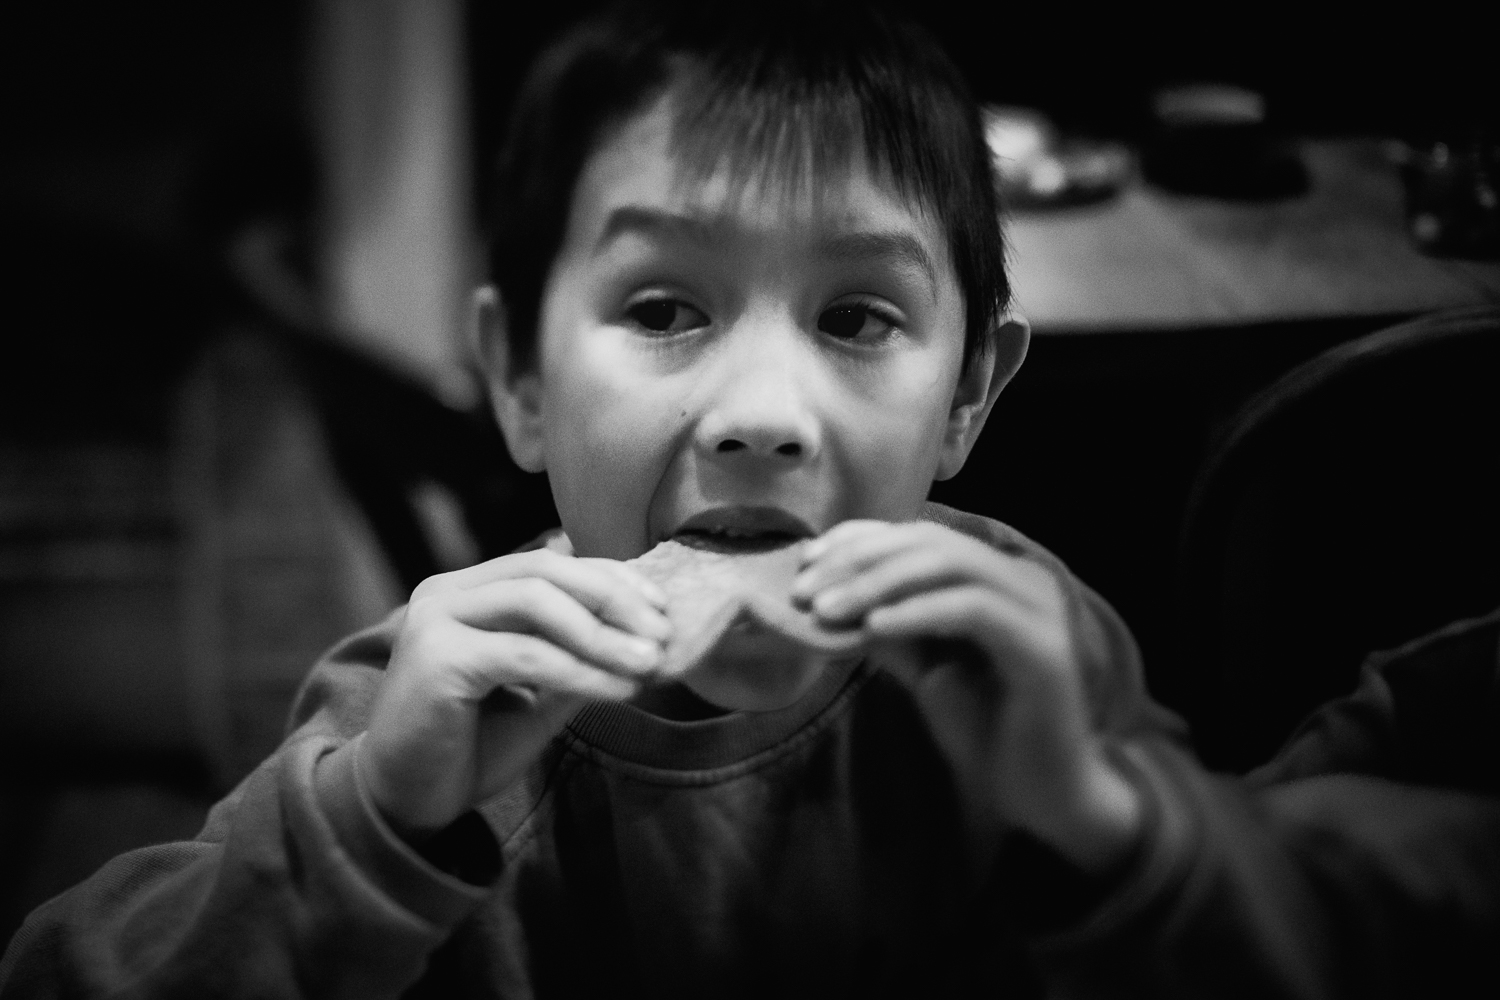 Boy biting into a gingerbread biscuit